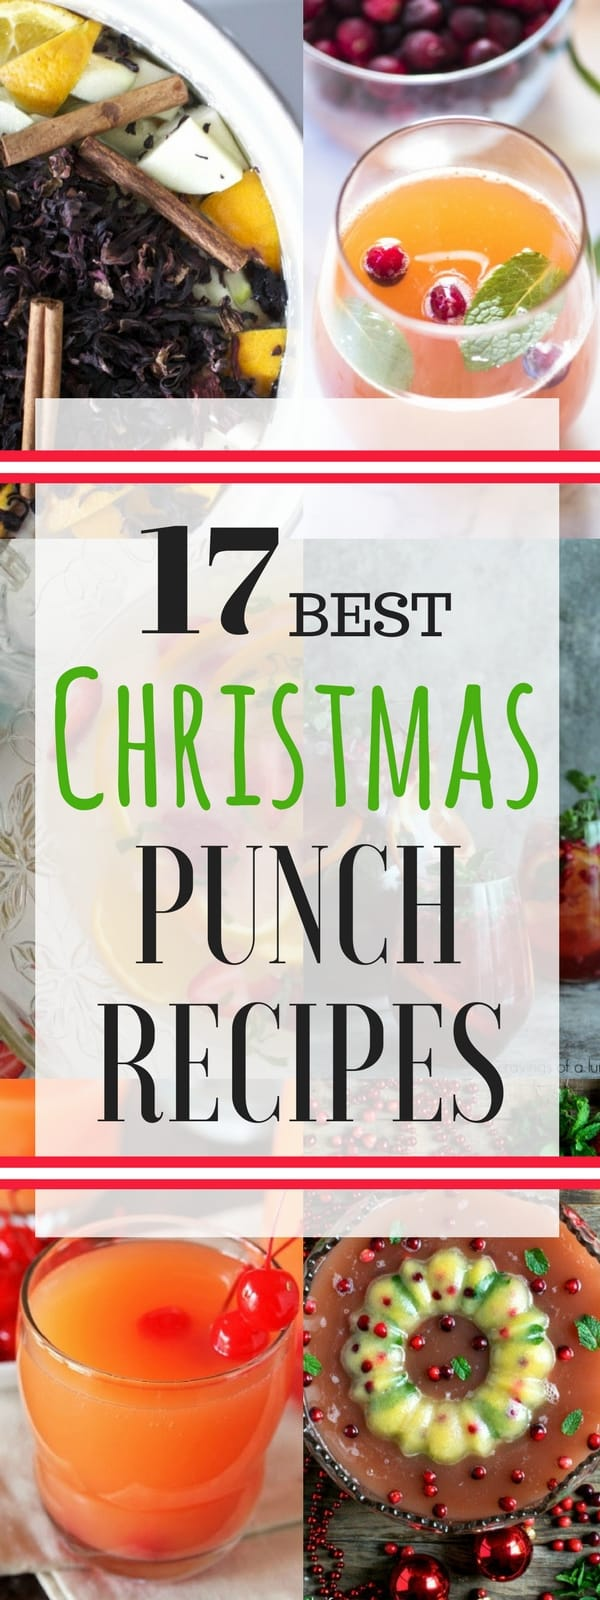 17 Best Christmas Punch Recipes - great list of party punch recipes for the holidays! SnappyGourmet.com